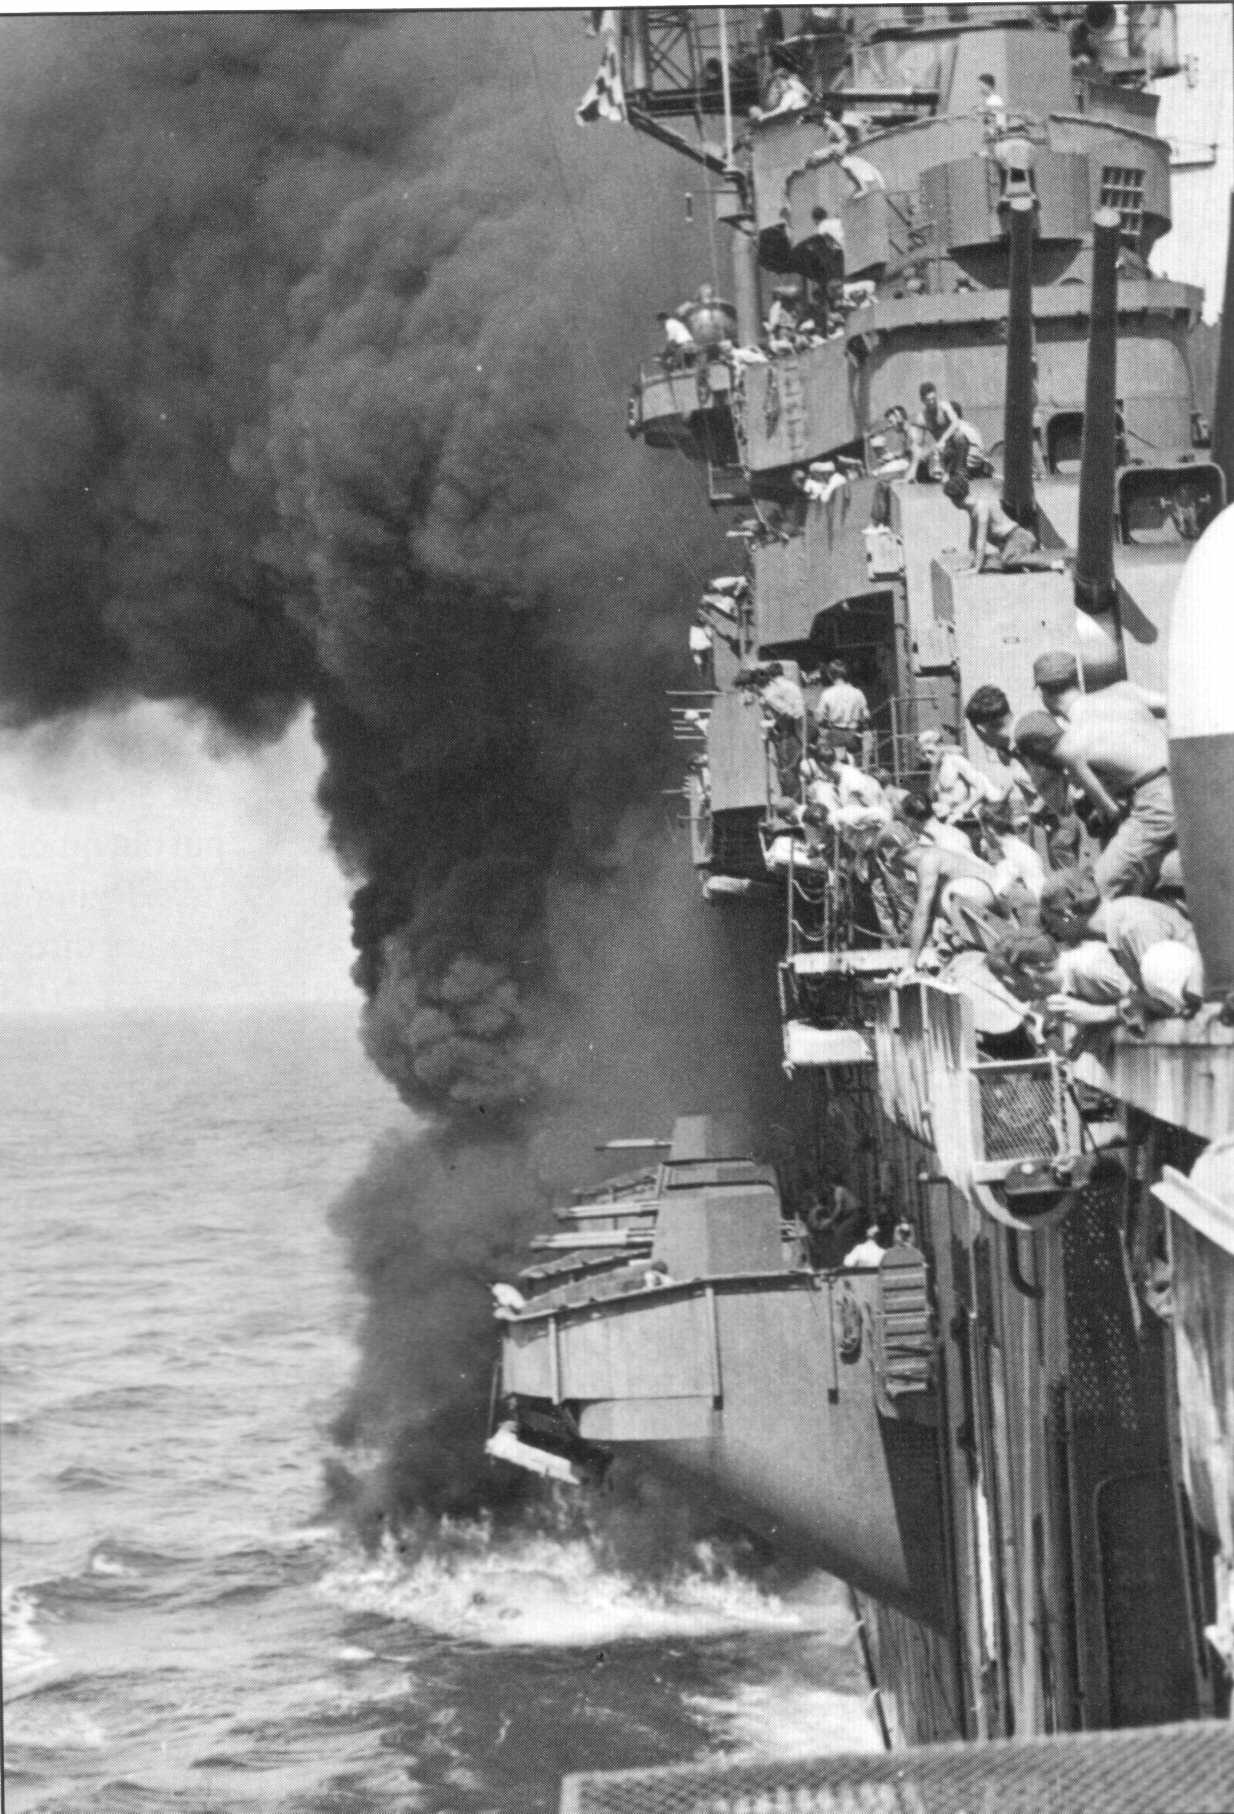 USS Yorktown (CV-10) hit by Japanese bomb at 1507, 18 March 1945 off Okinawa.